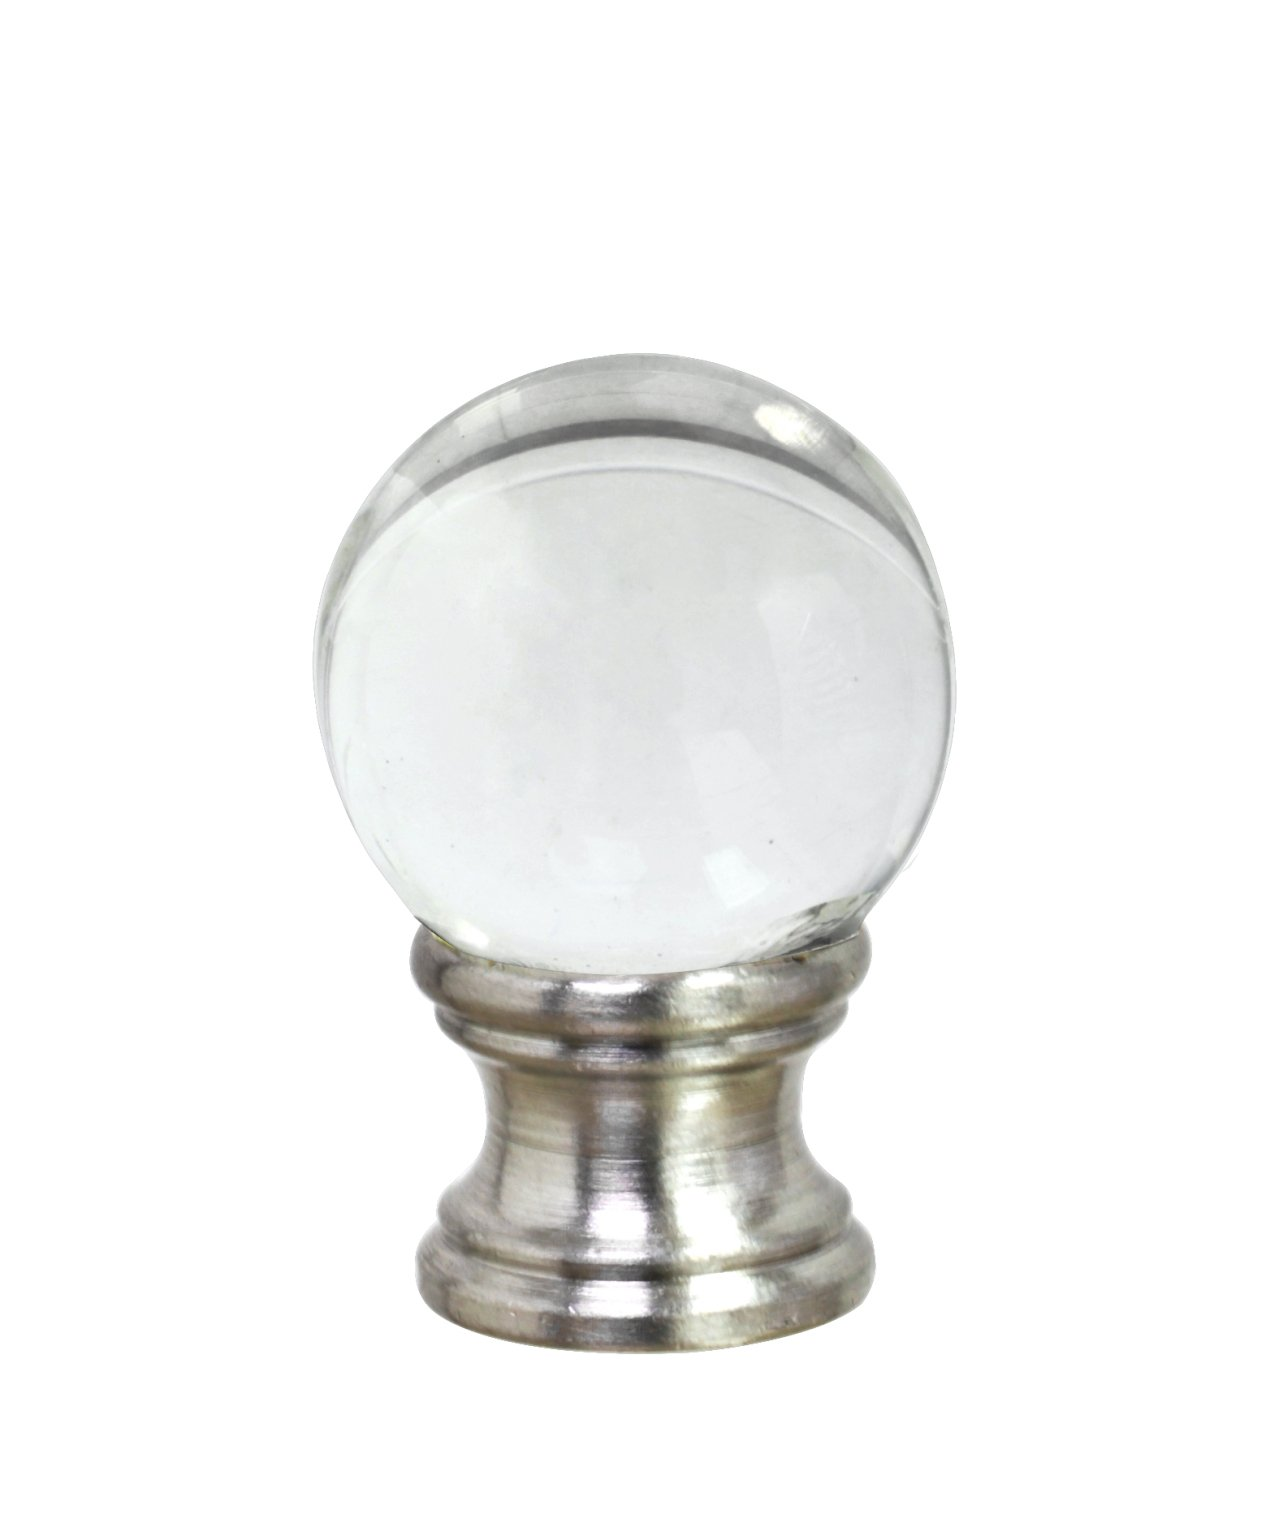 Aspen Creative 24014 Clear Glass Ball Lamp Finial in Nickel Finish, 1 1/2'' Tall (1 Pack)